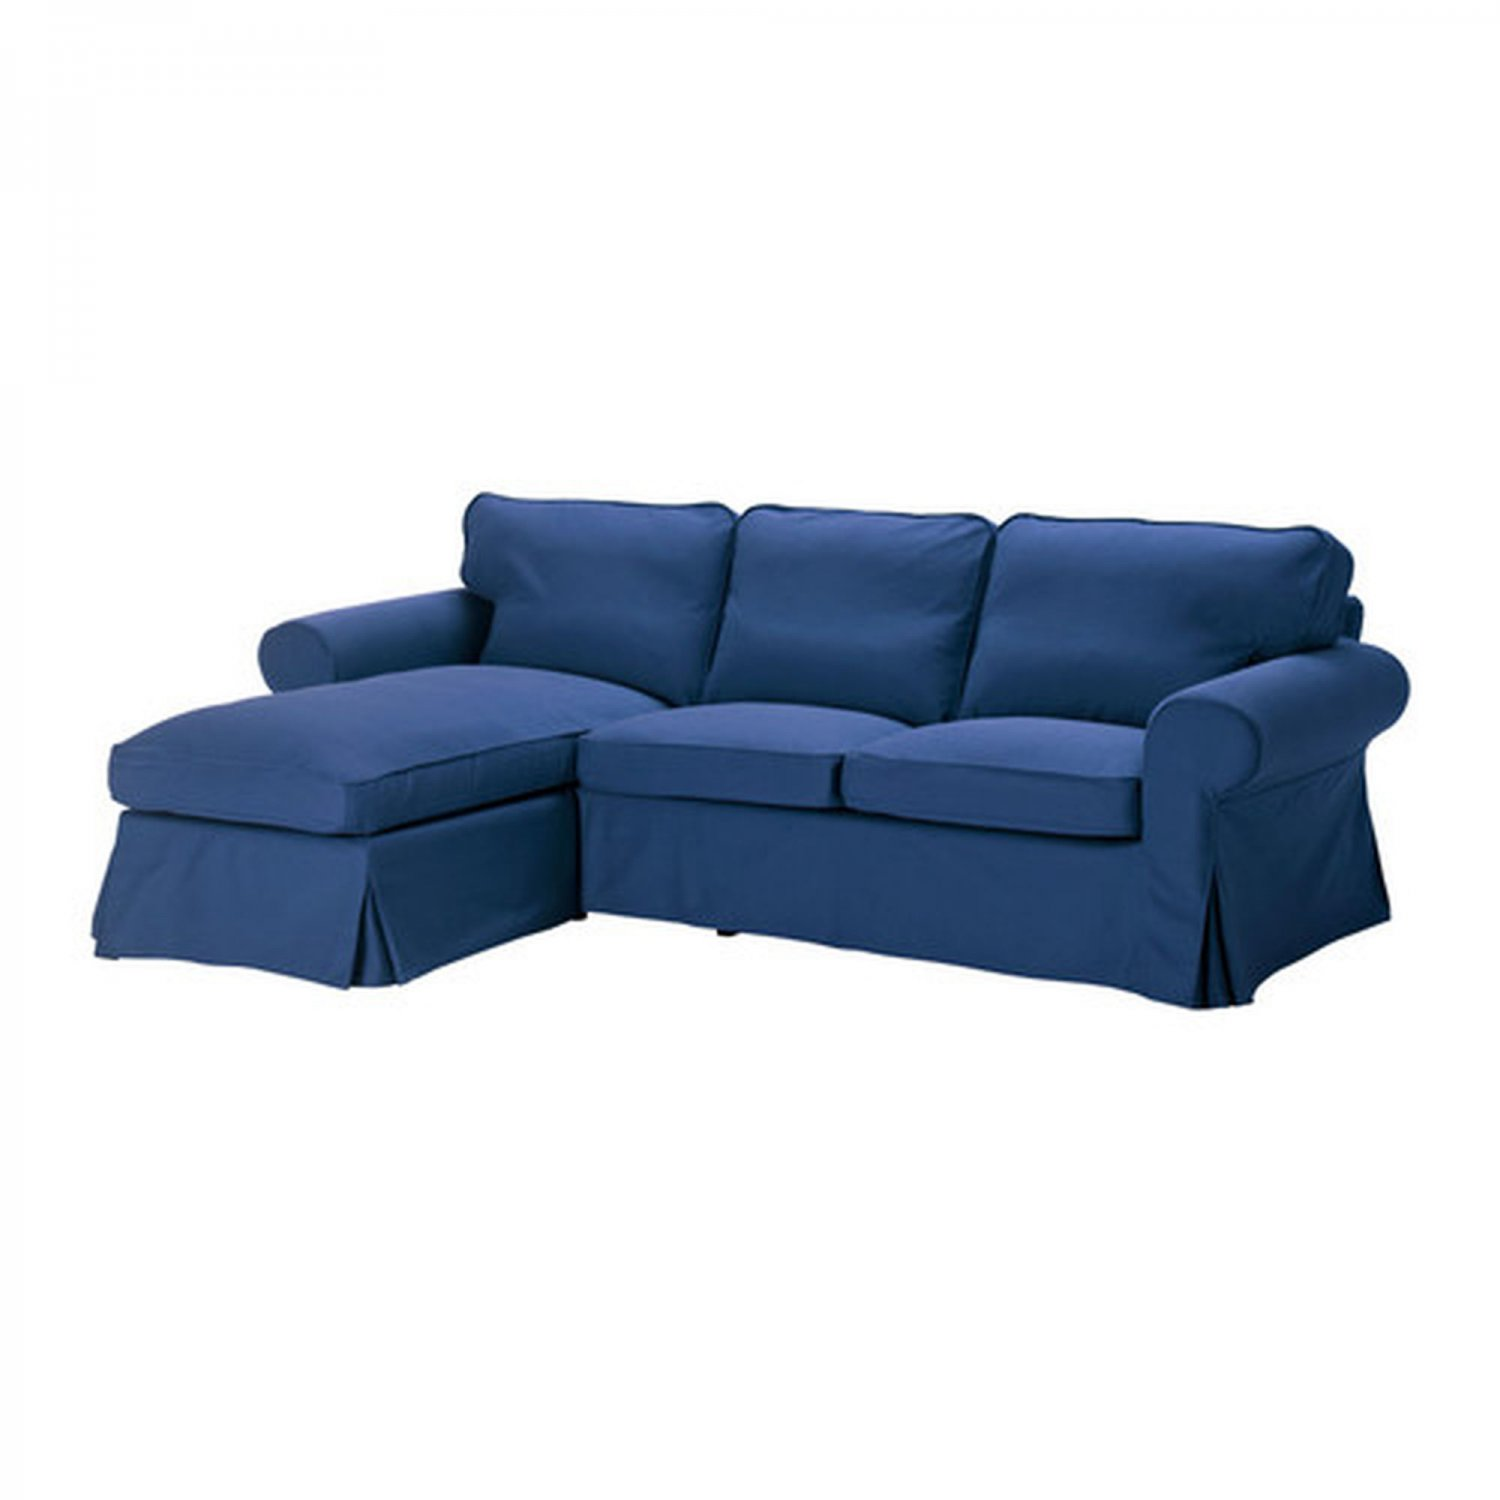 Ikea ektorp loveseat with chaise lounge cover slipcover idemo blue Blue loveseat slipcover